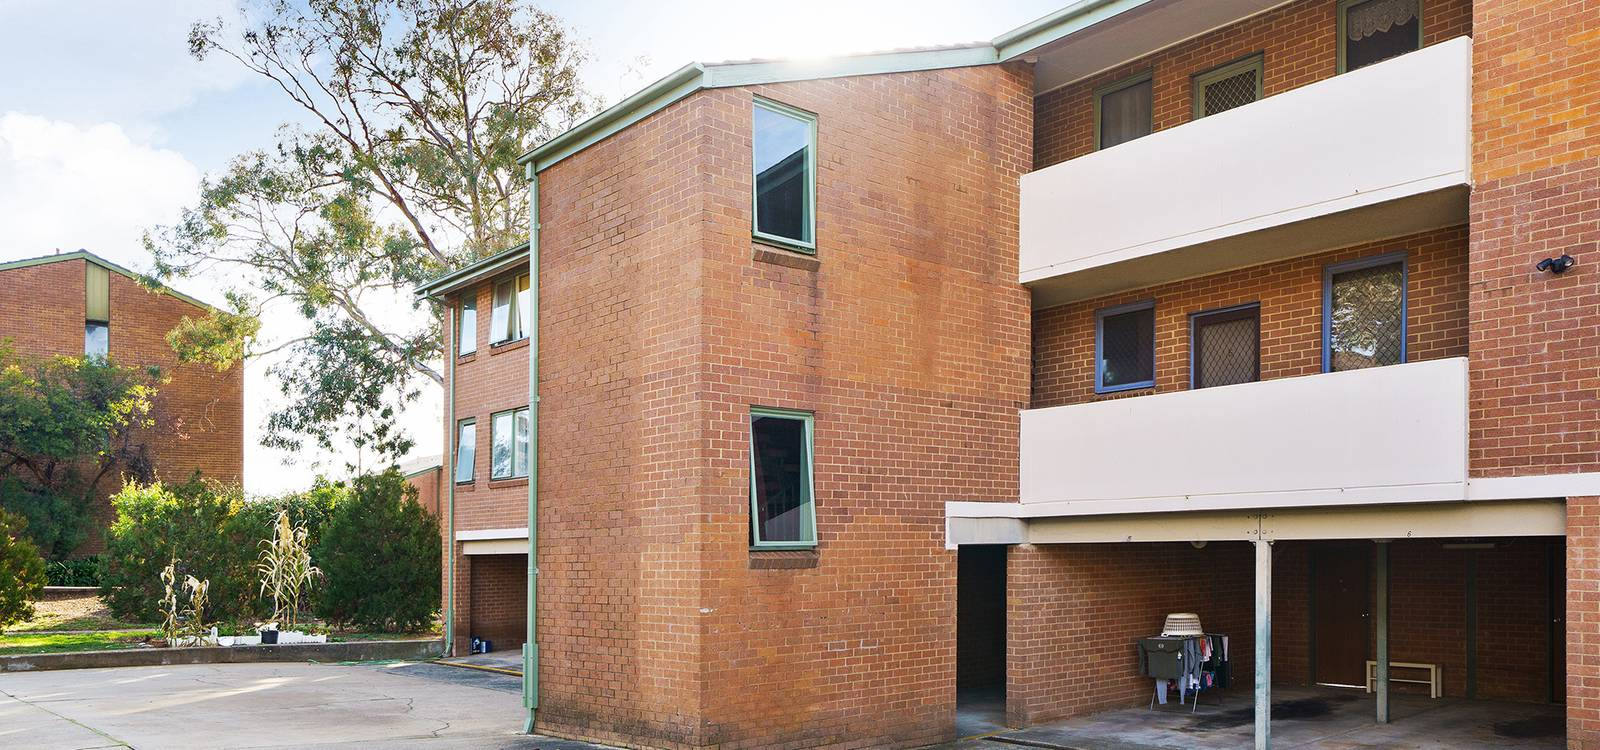 5/26 Springvale Drive HAWKER, ACT 2614 - photo 1